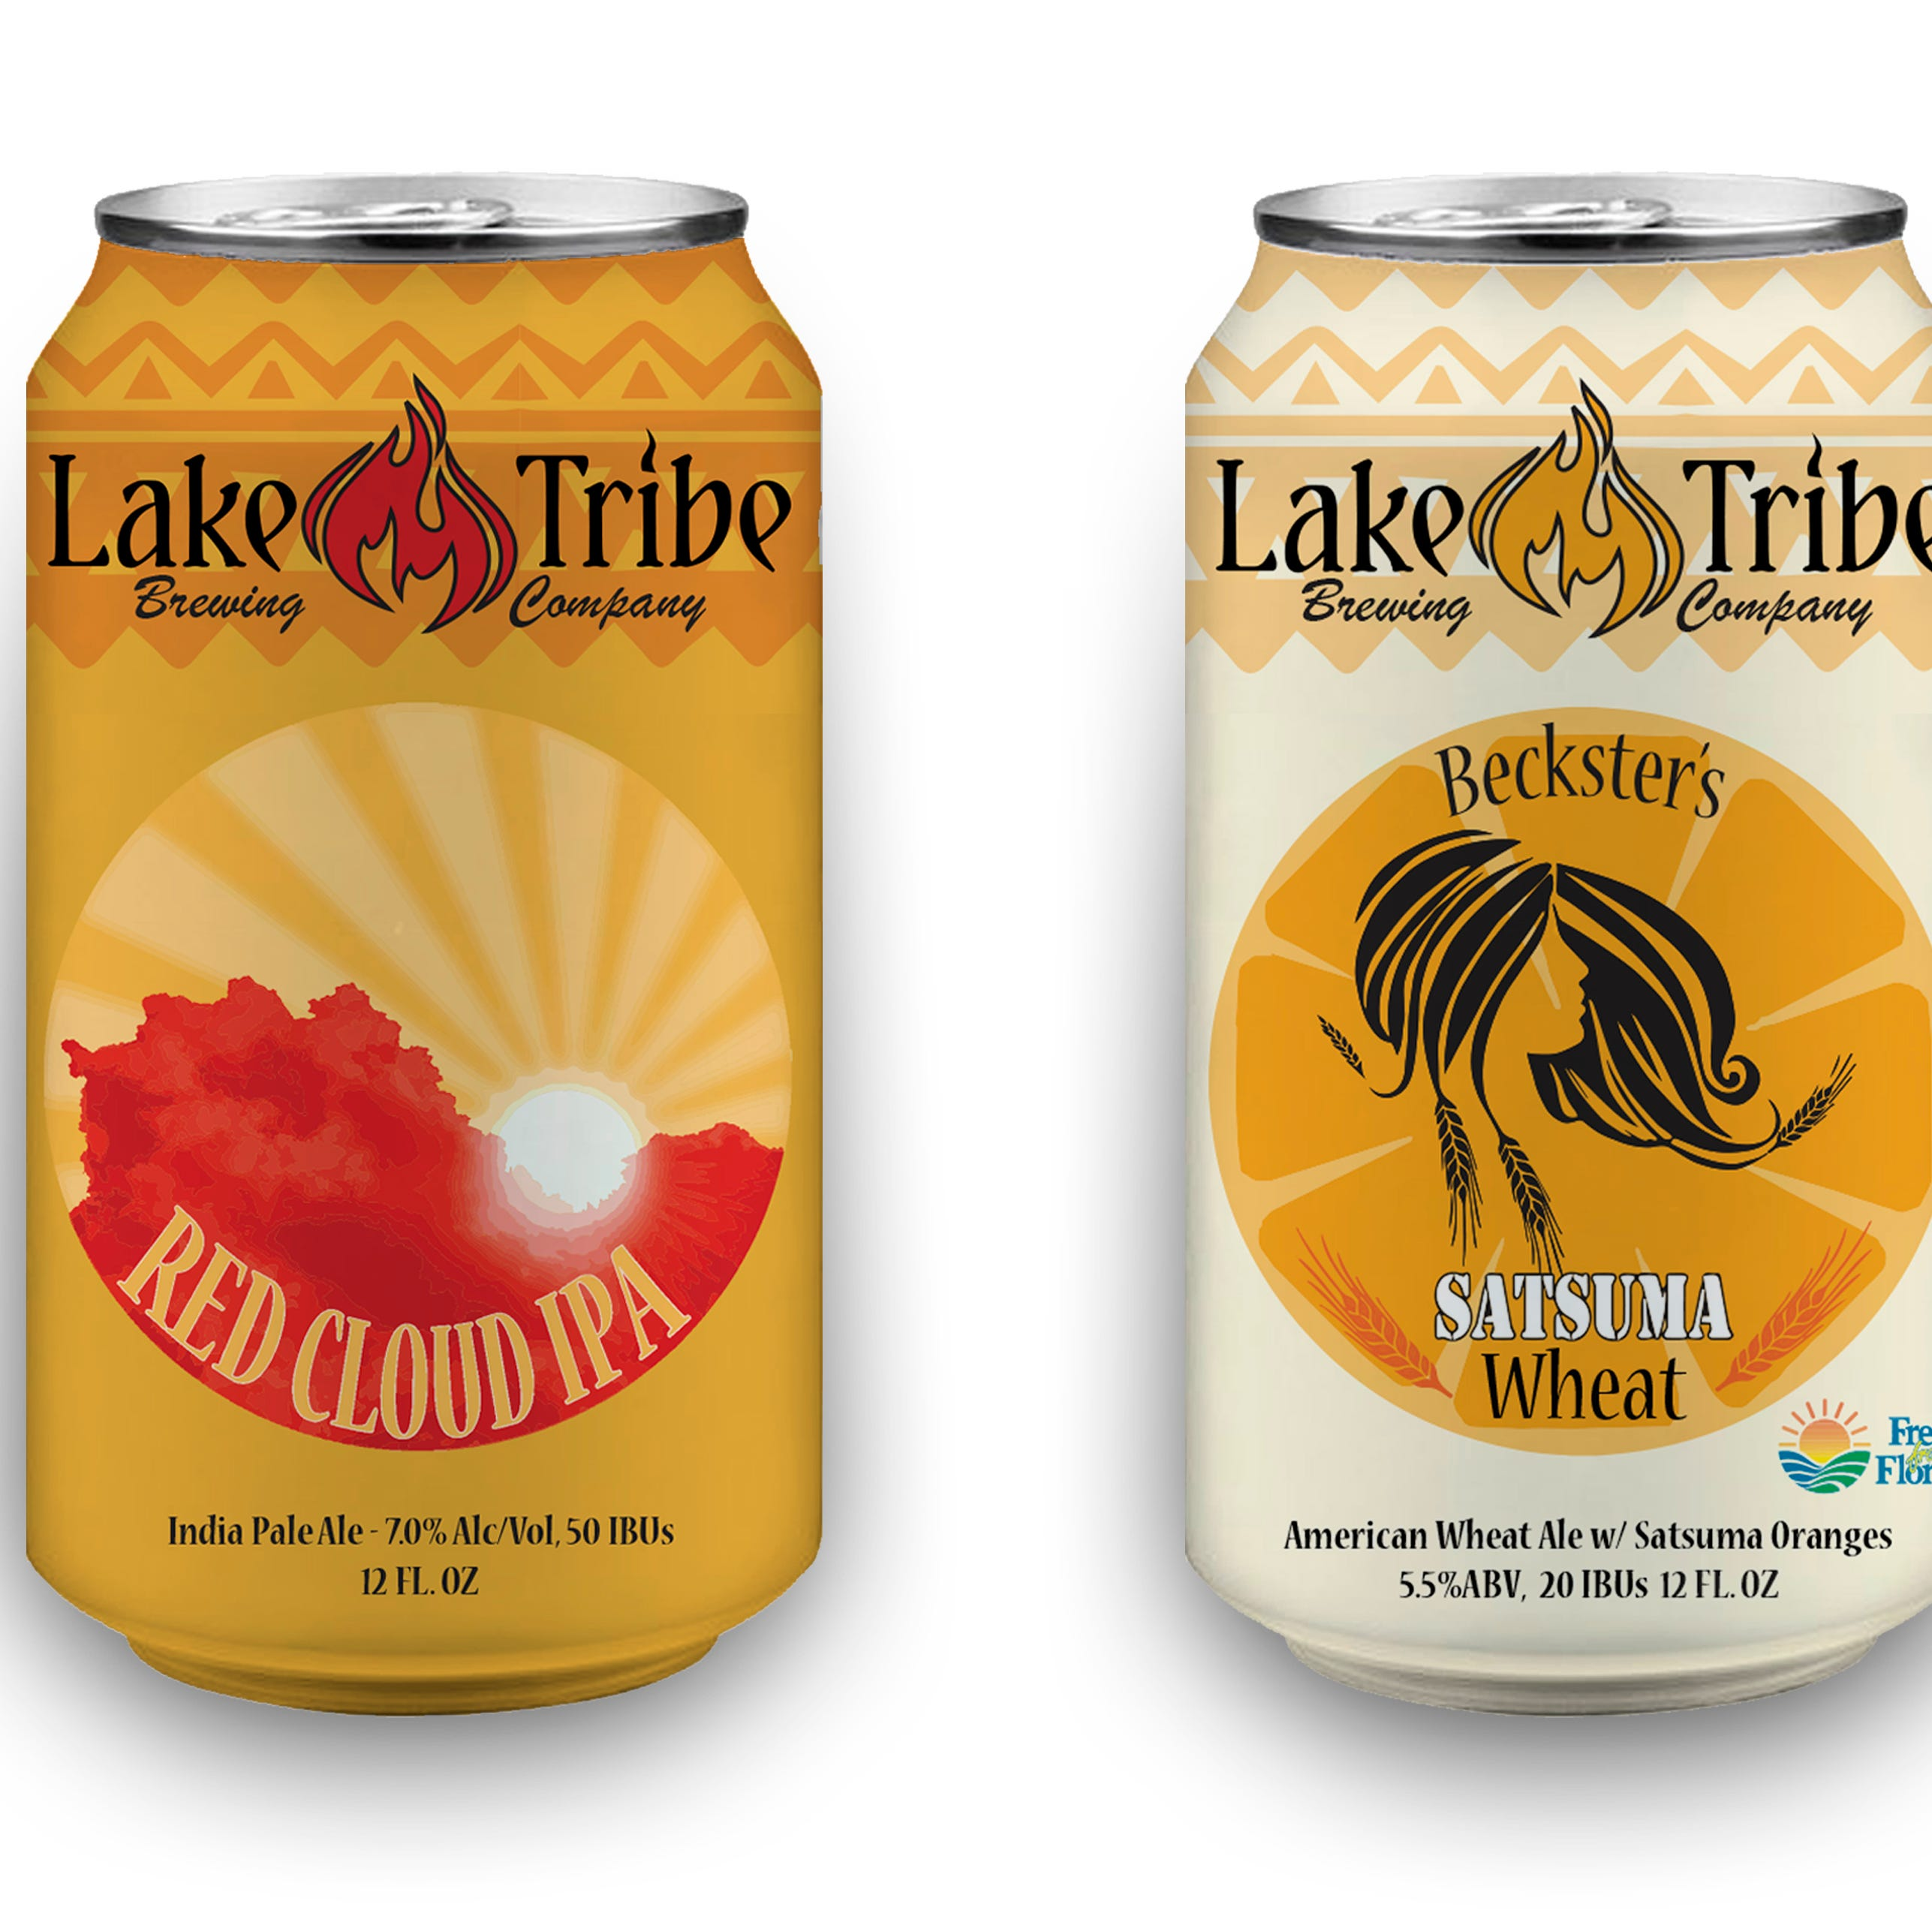 Lake Tribe beer coming to cans by early September